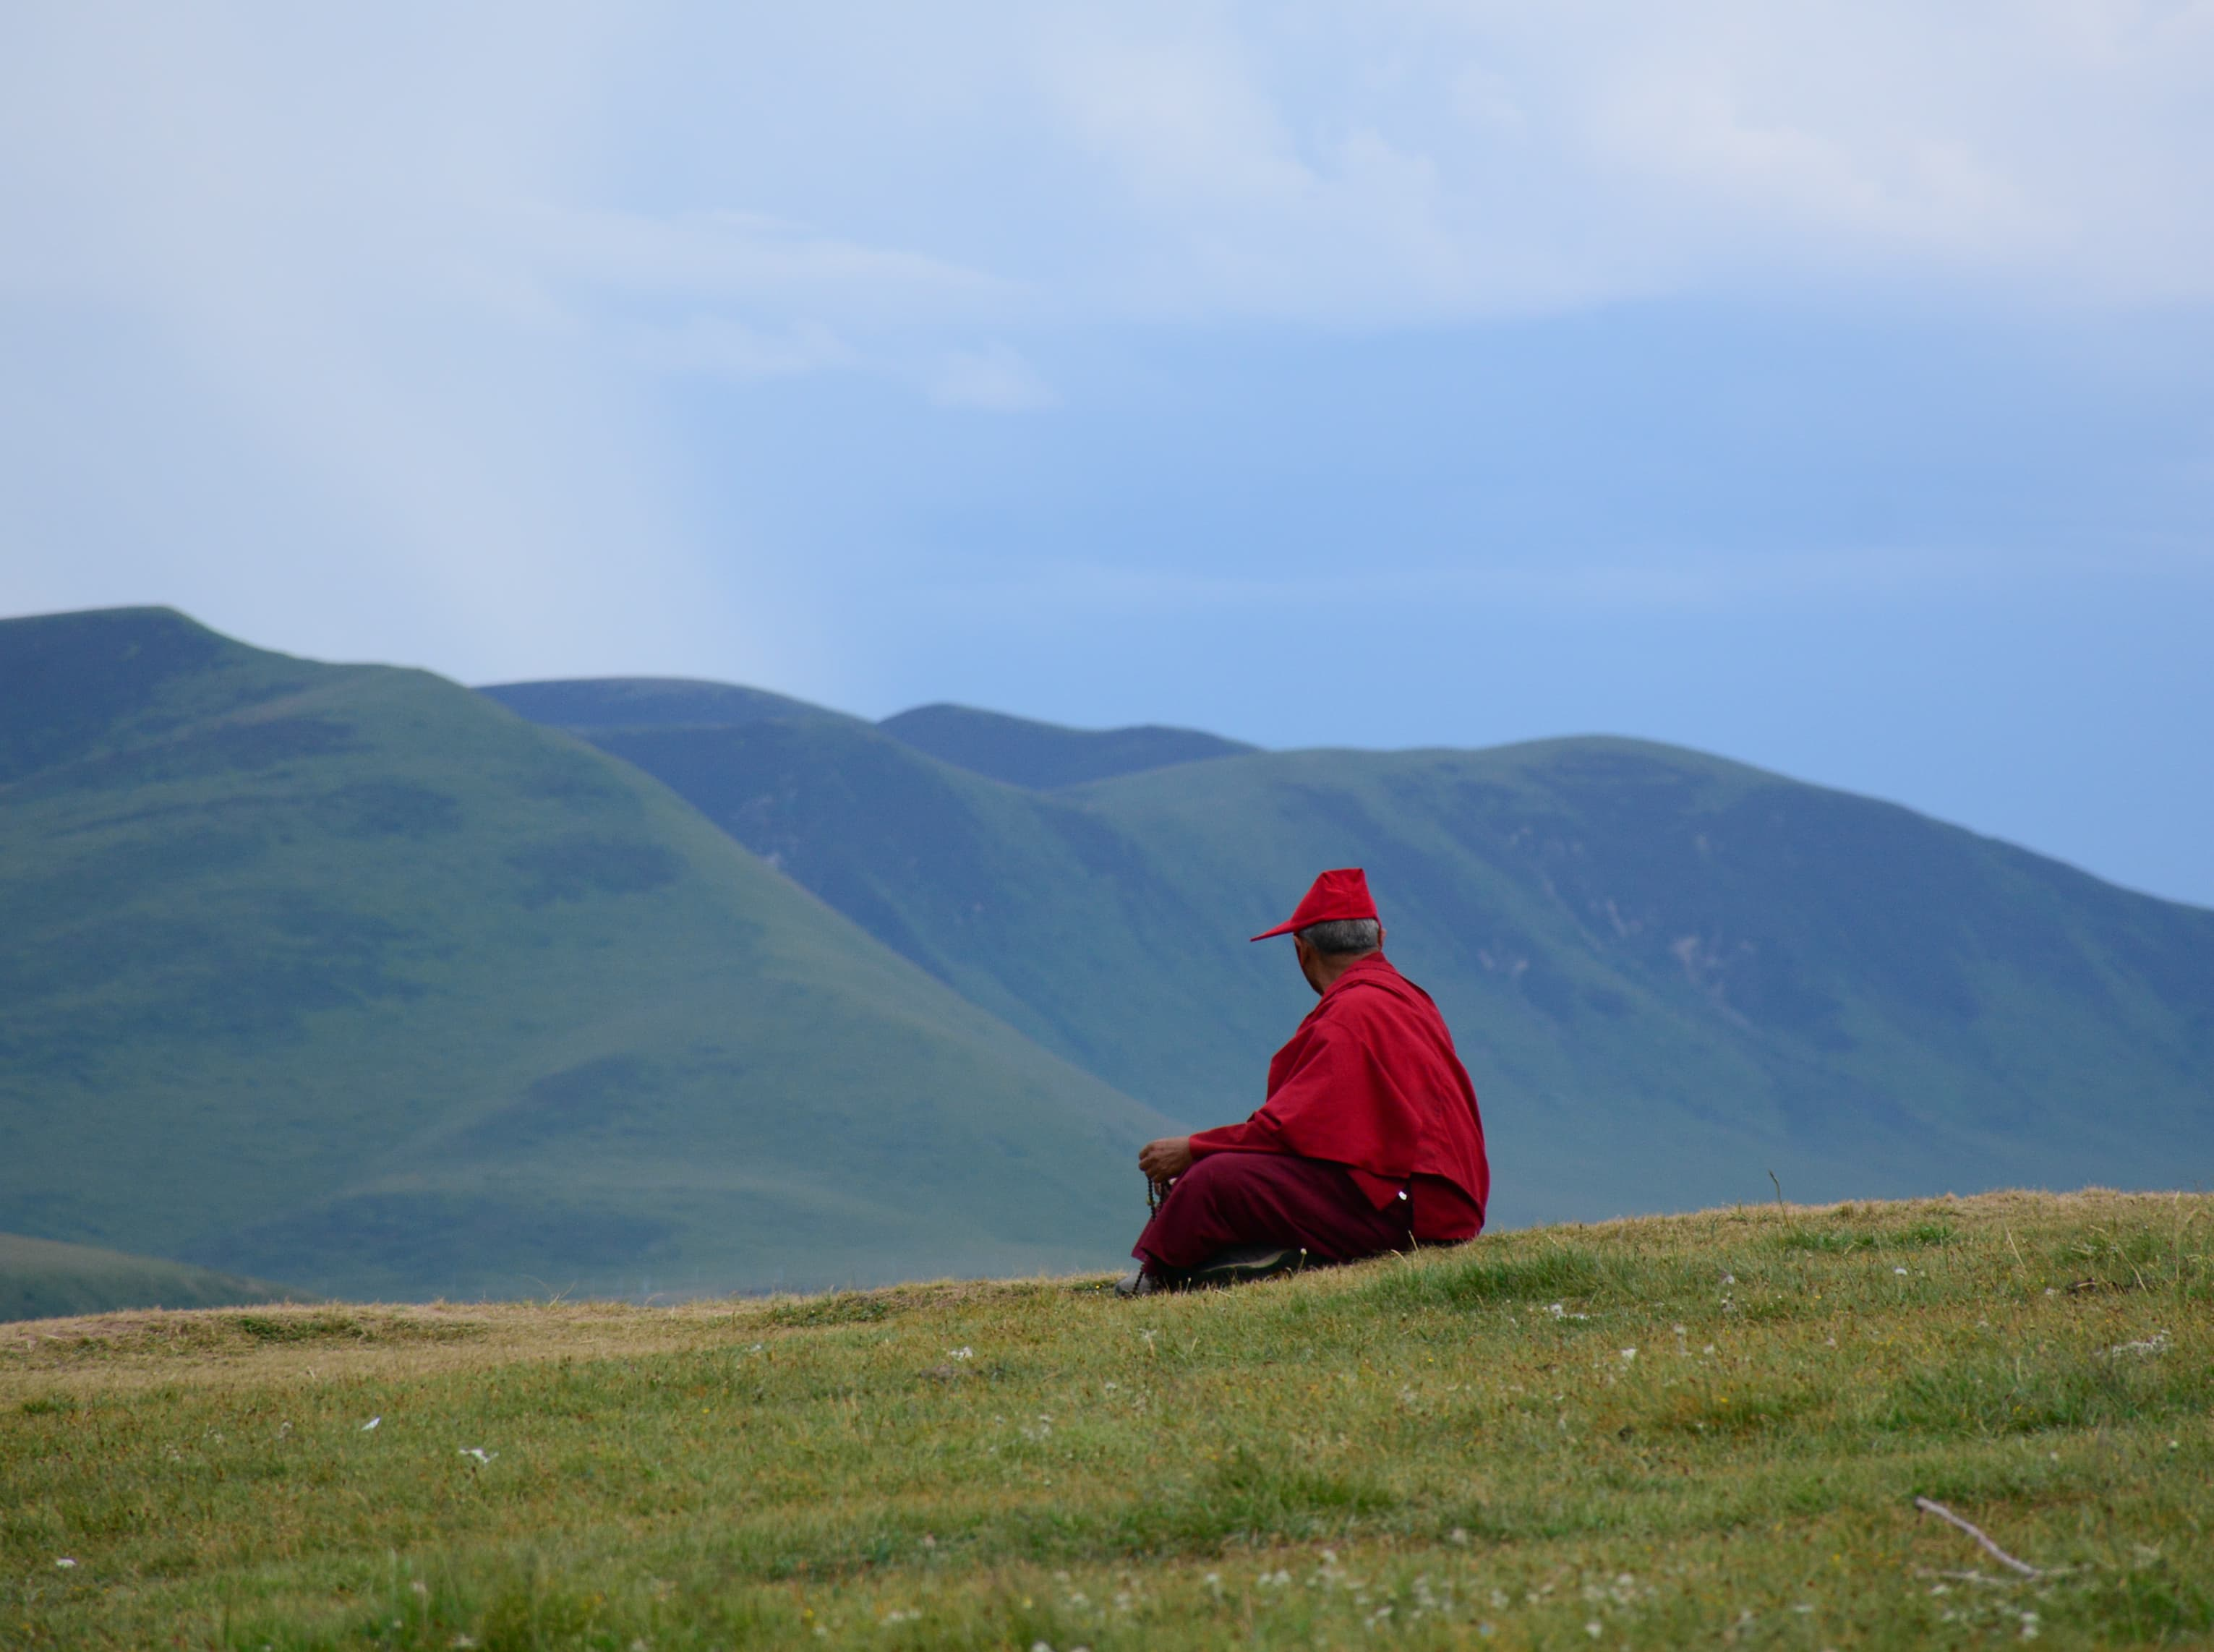 Tibetan monk meditating outside